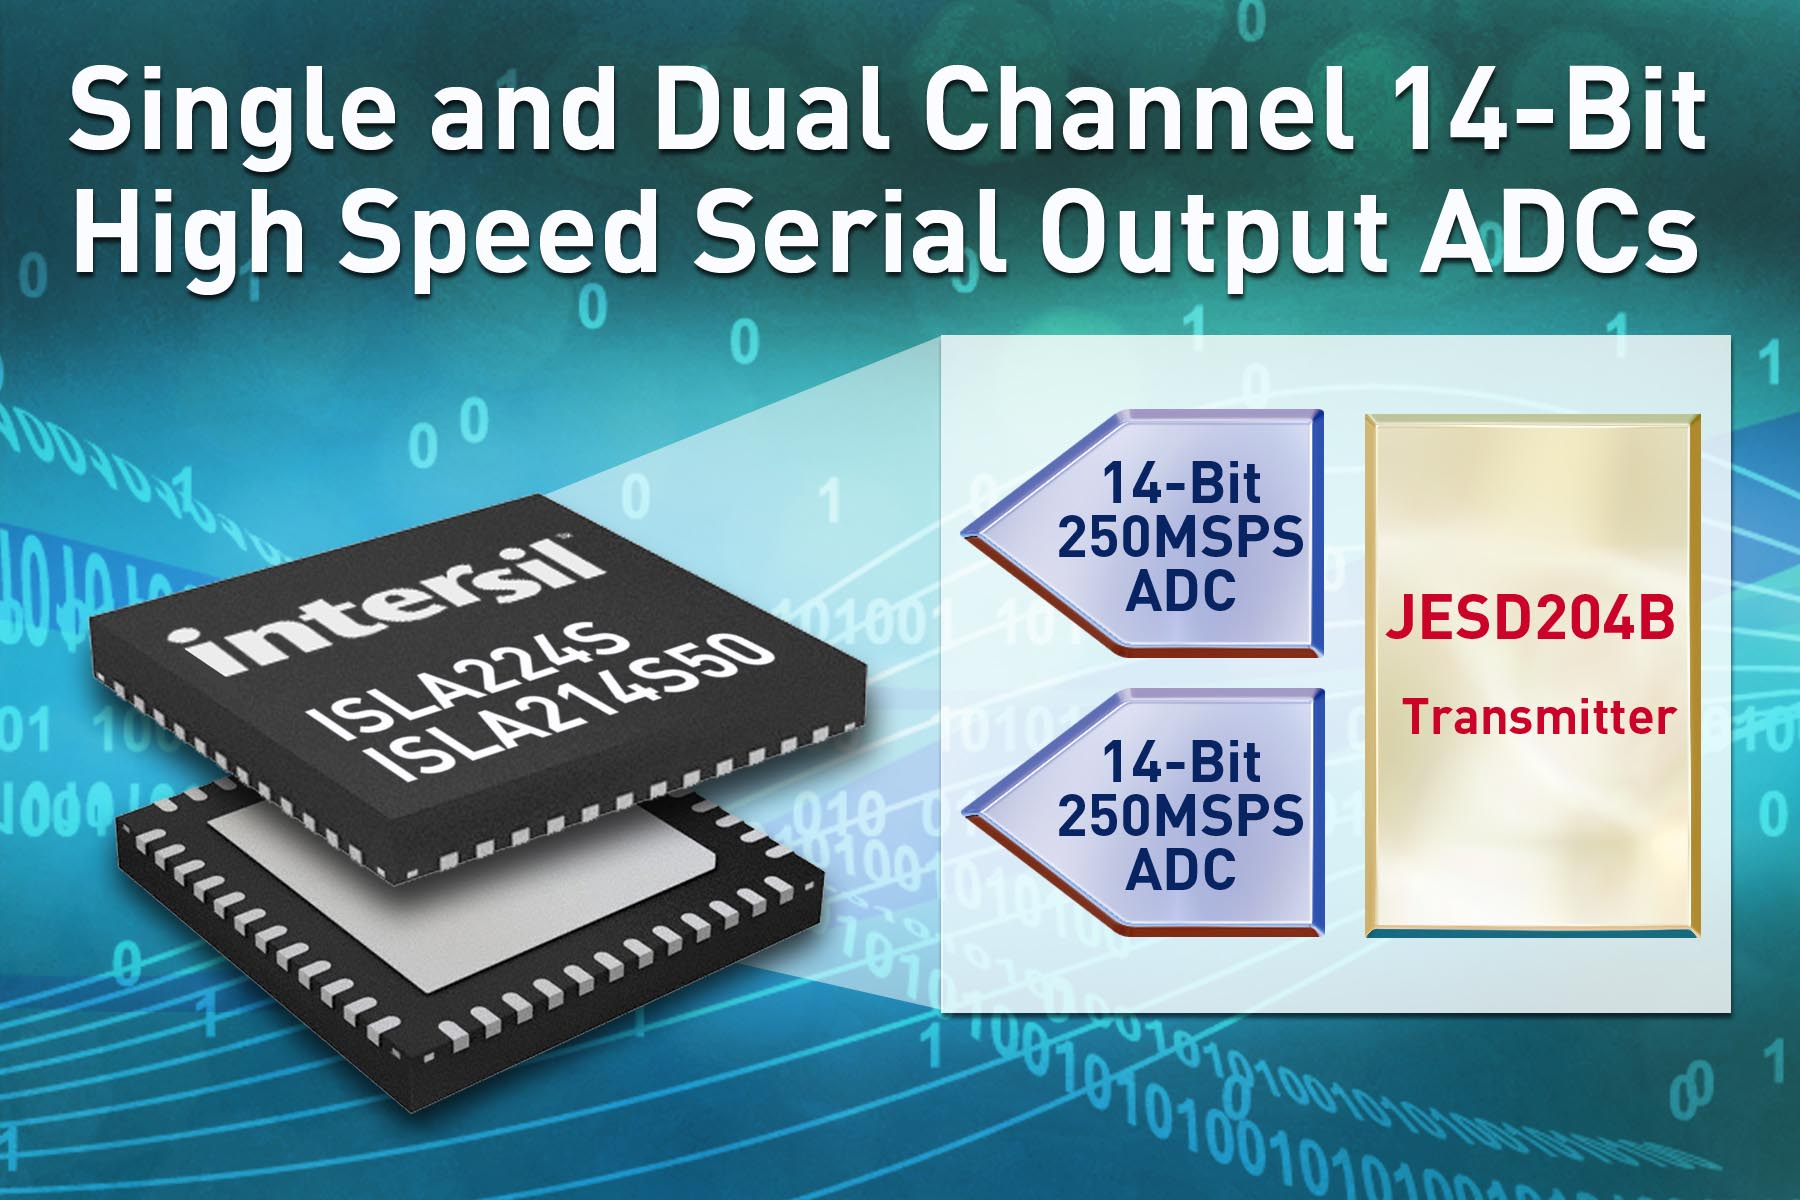 Compact 250/500Msps Serial Output ADCs Simplify Board Layout